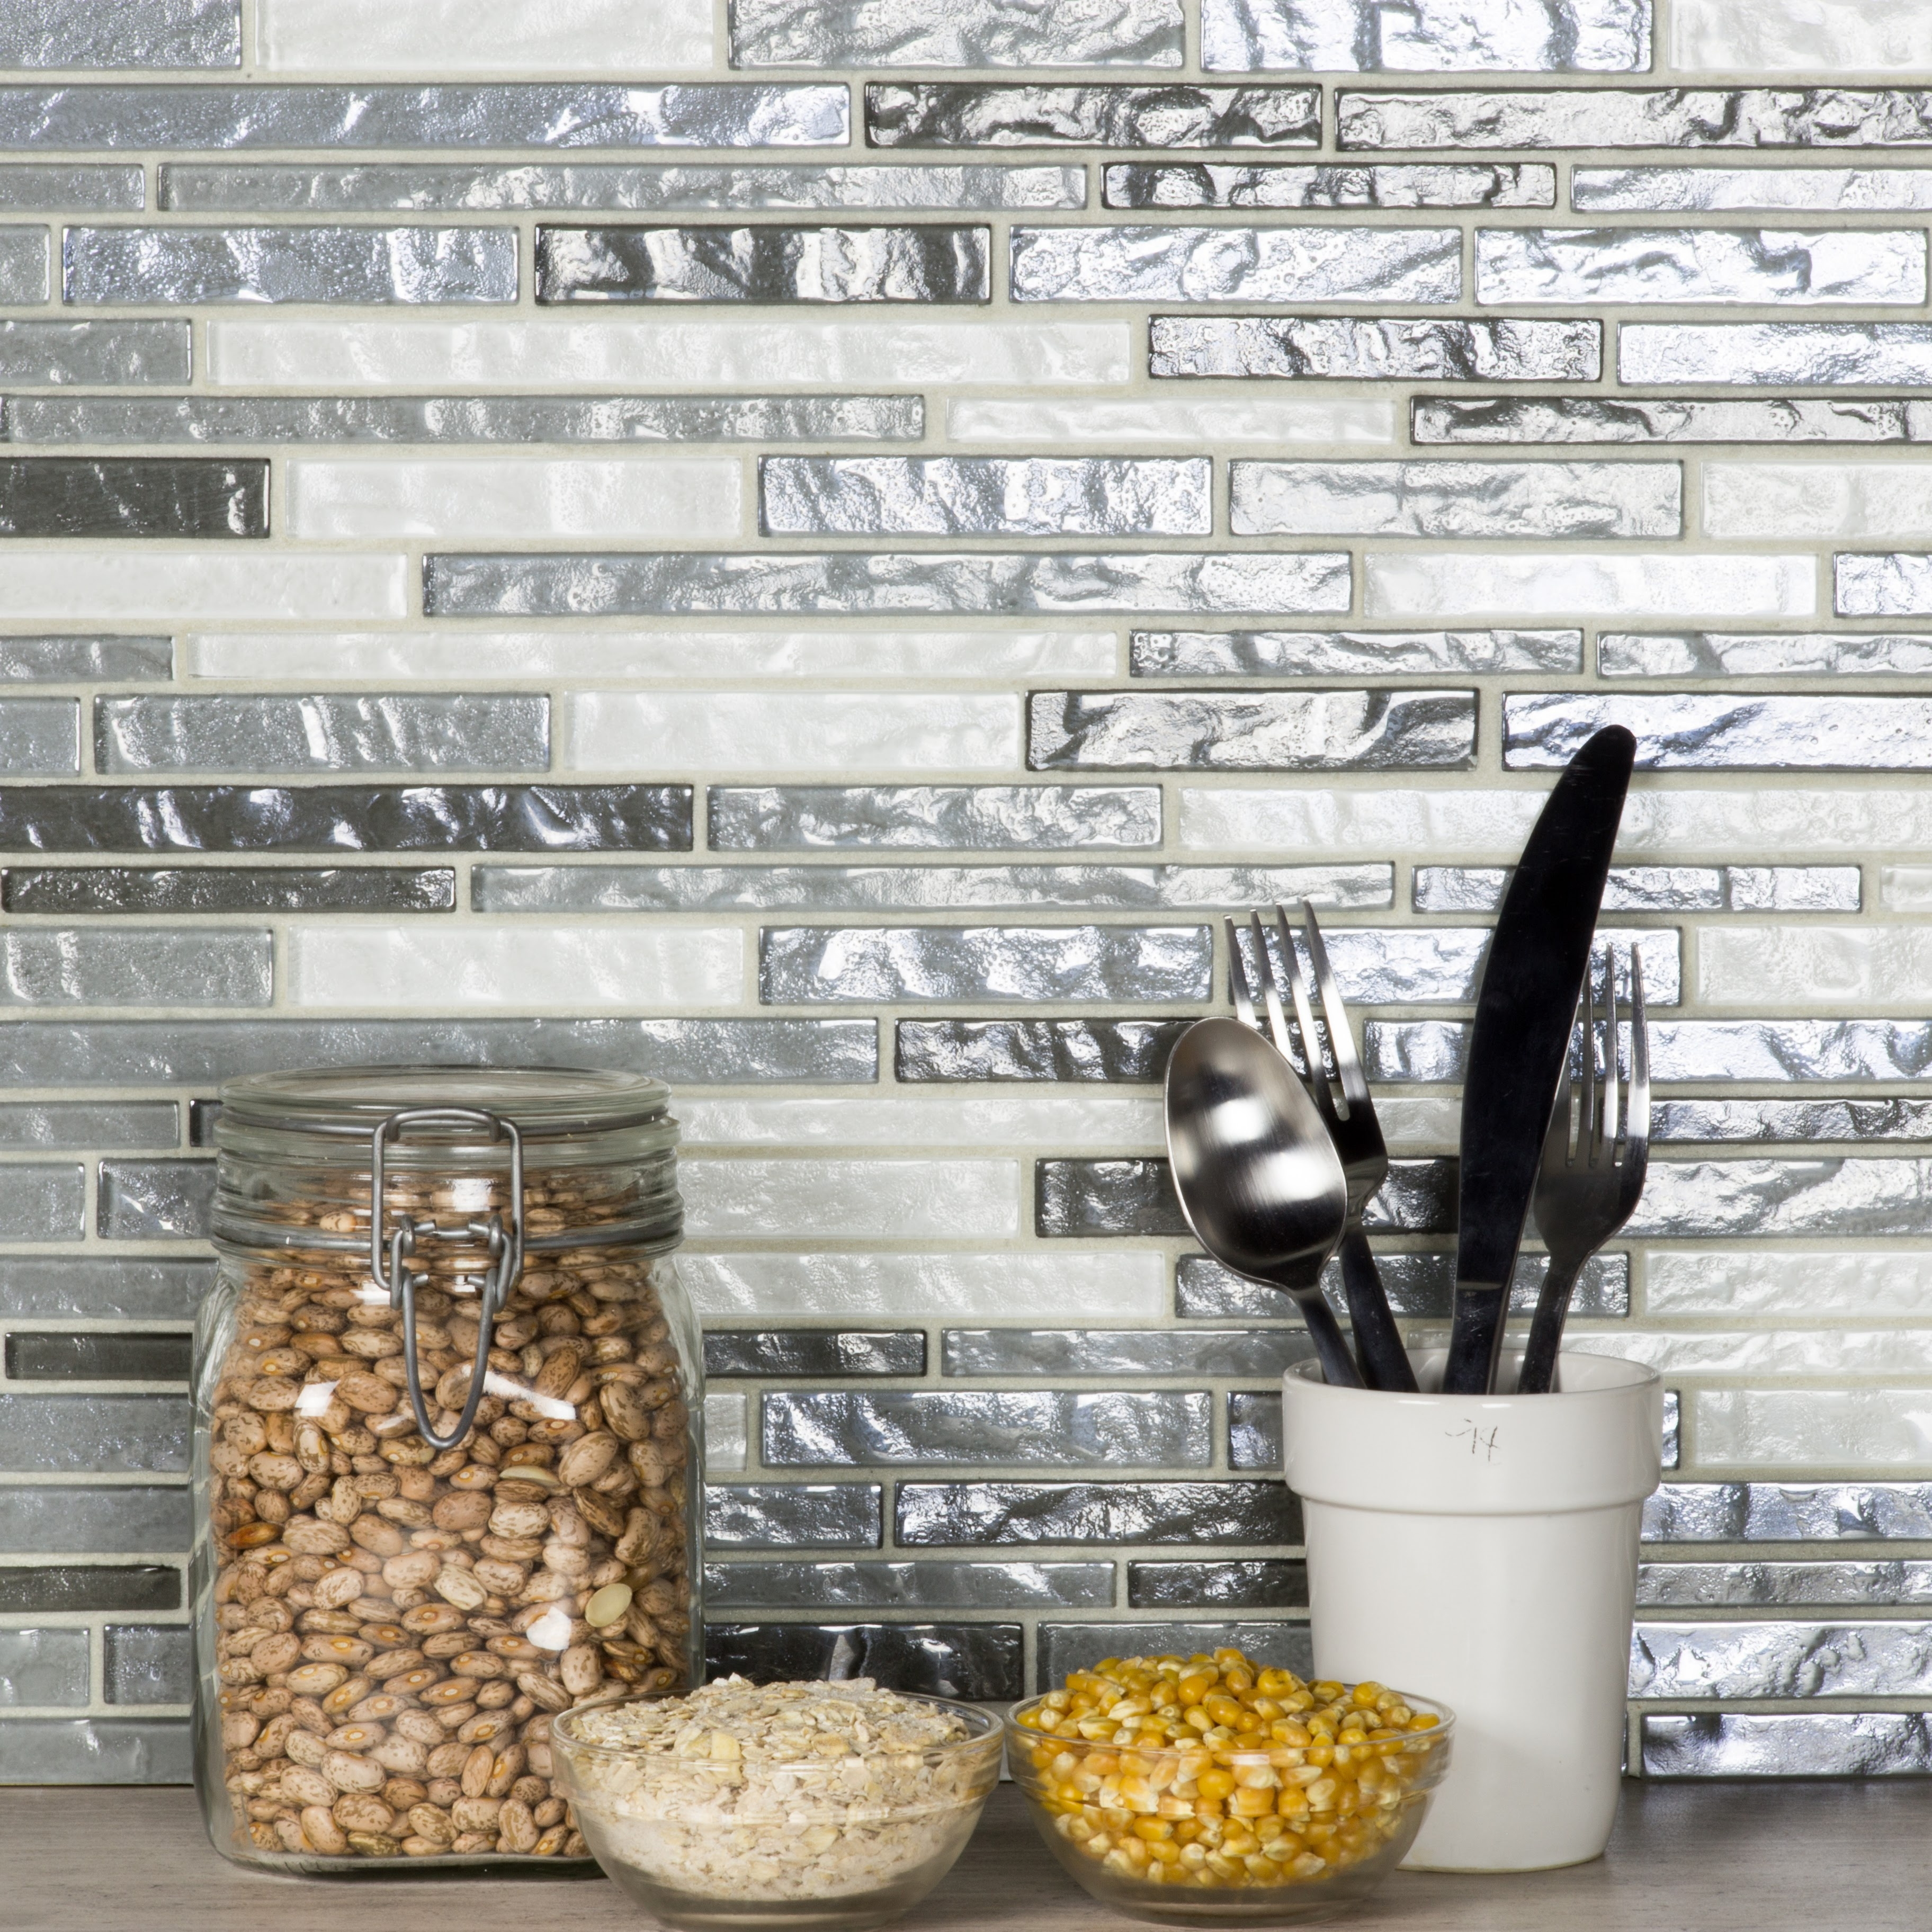 Geo 15.25 in x 11.75 in Glass Linear Mosaic in WHISTLER Textured